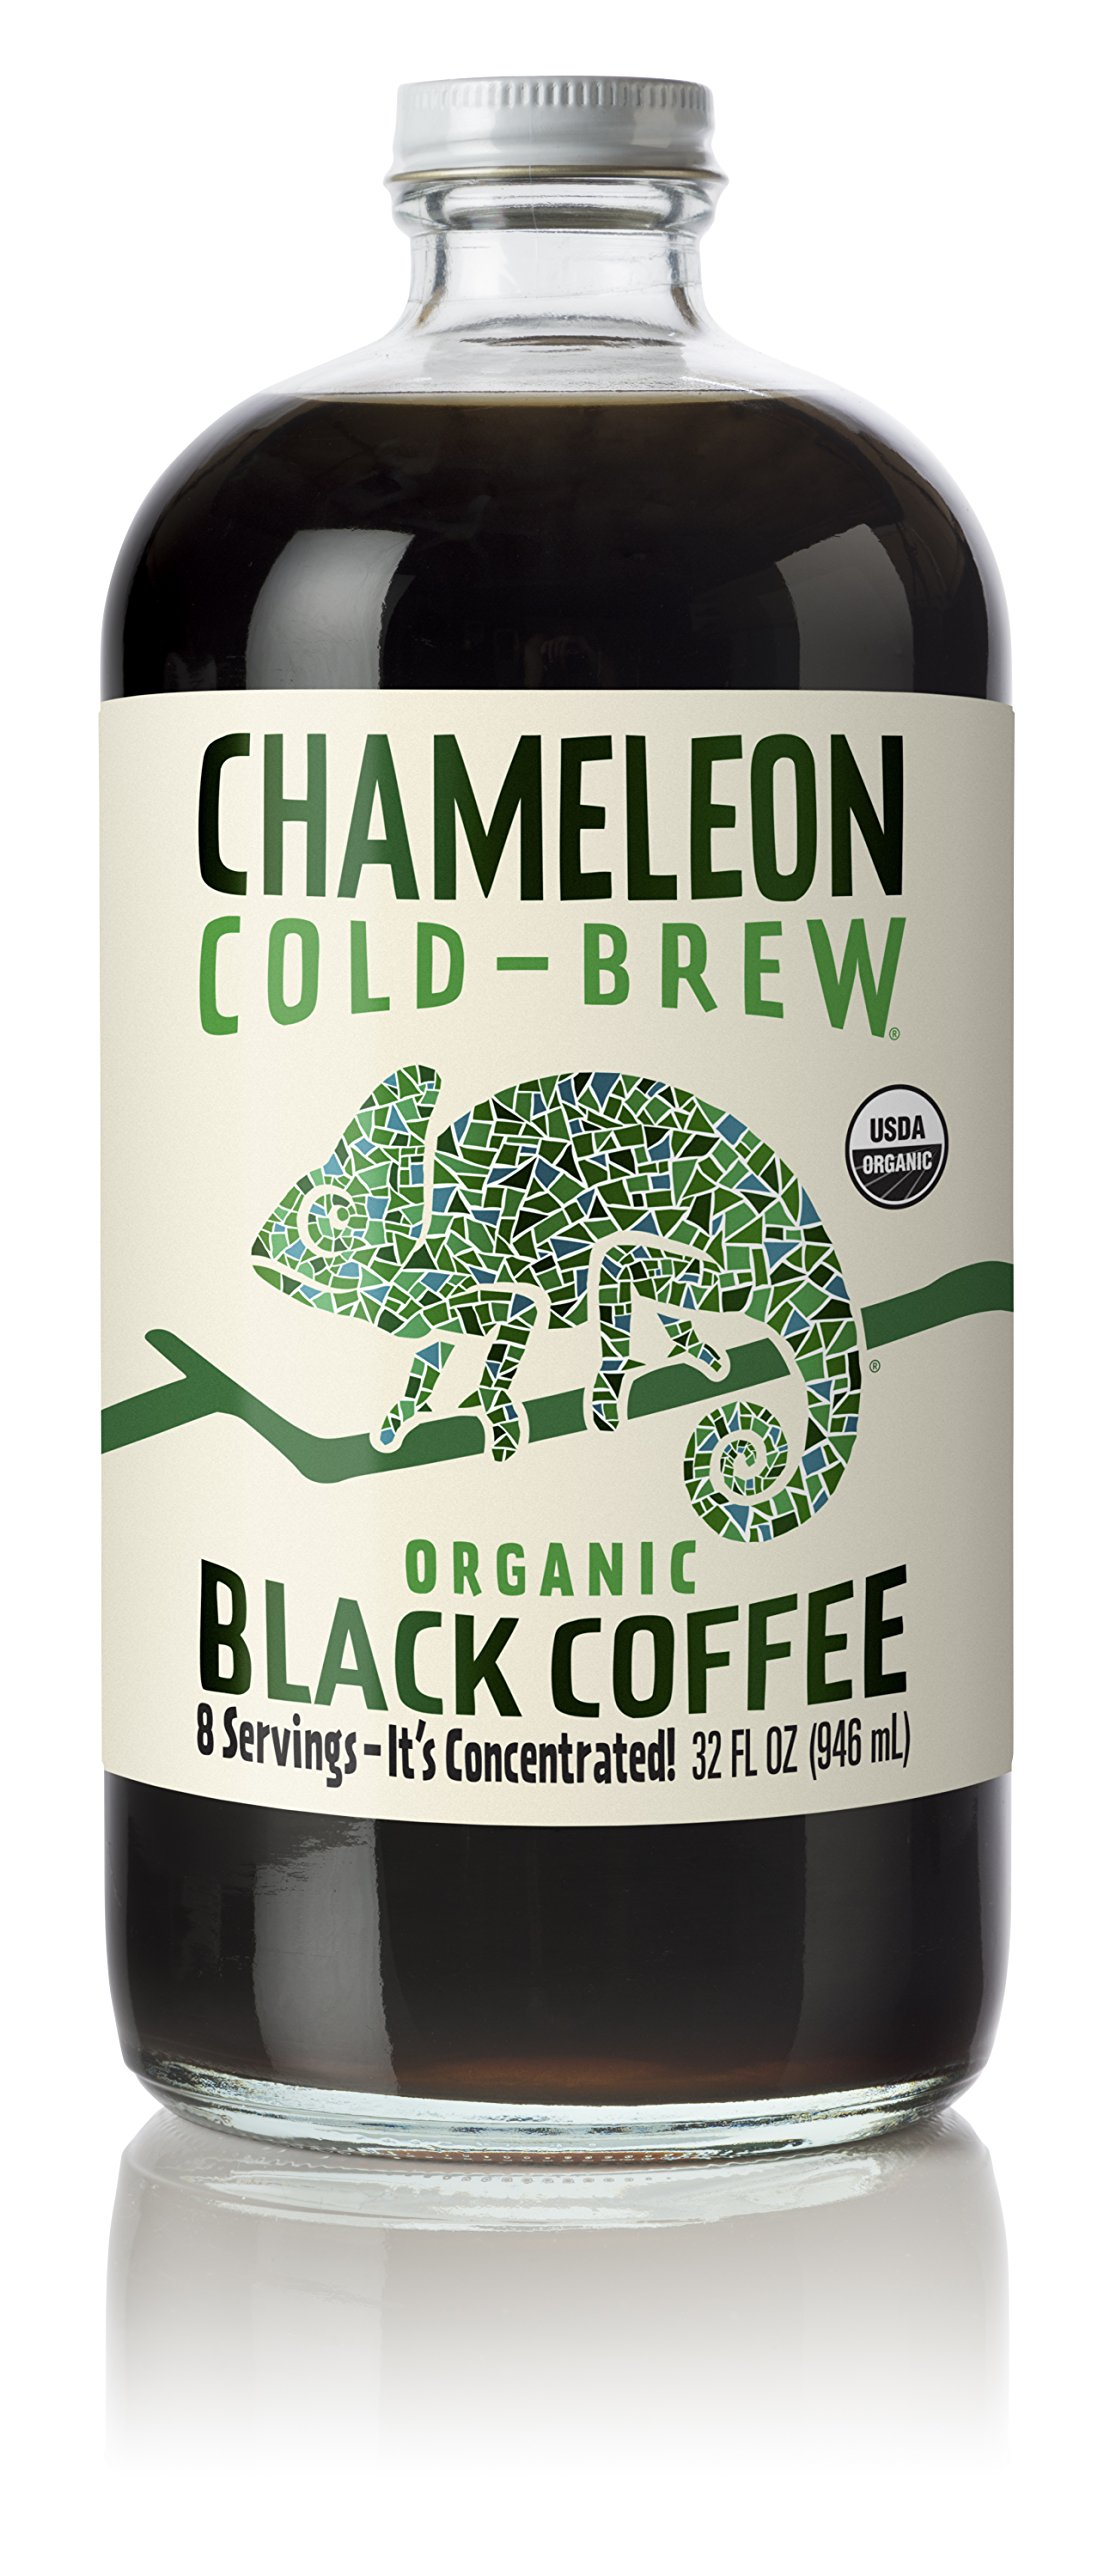 Chameleon Cold-Brew Black Coffee Concentrate 2 pack by Chameleon Cold Brew